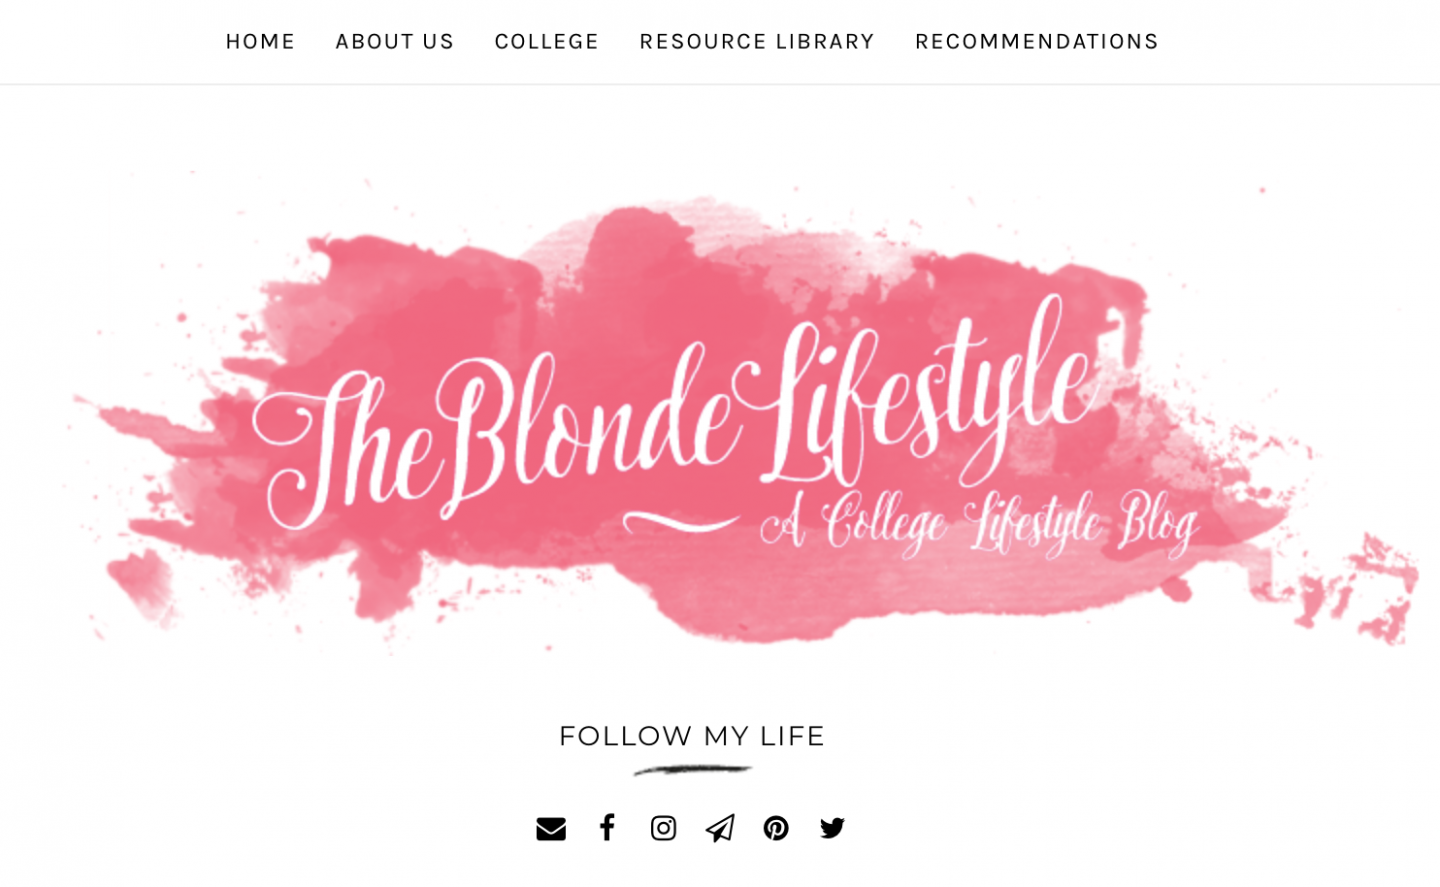 The Blonde Lifestyle college blog